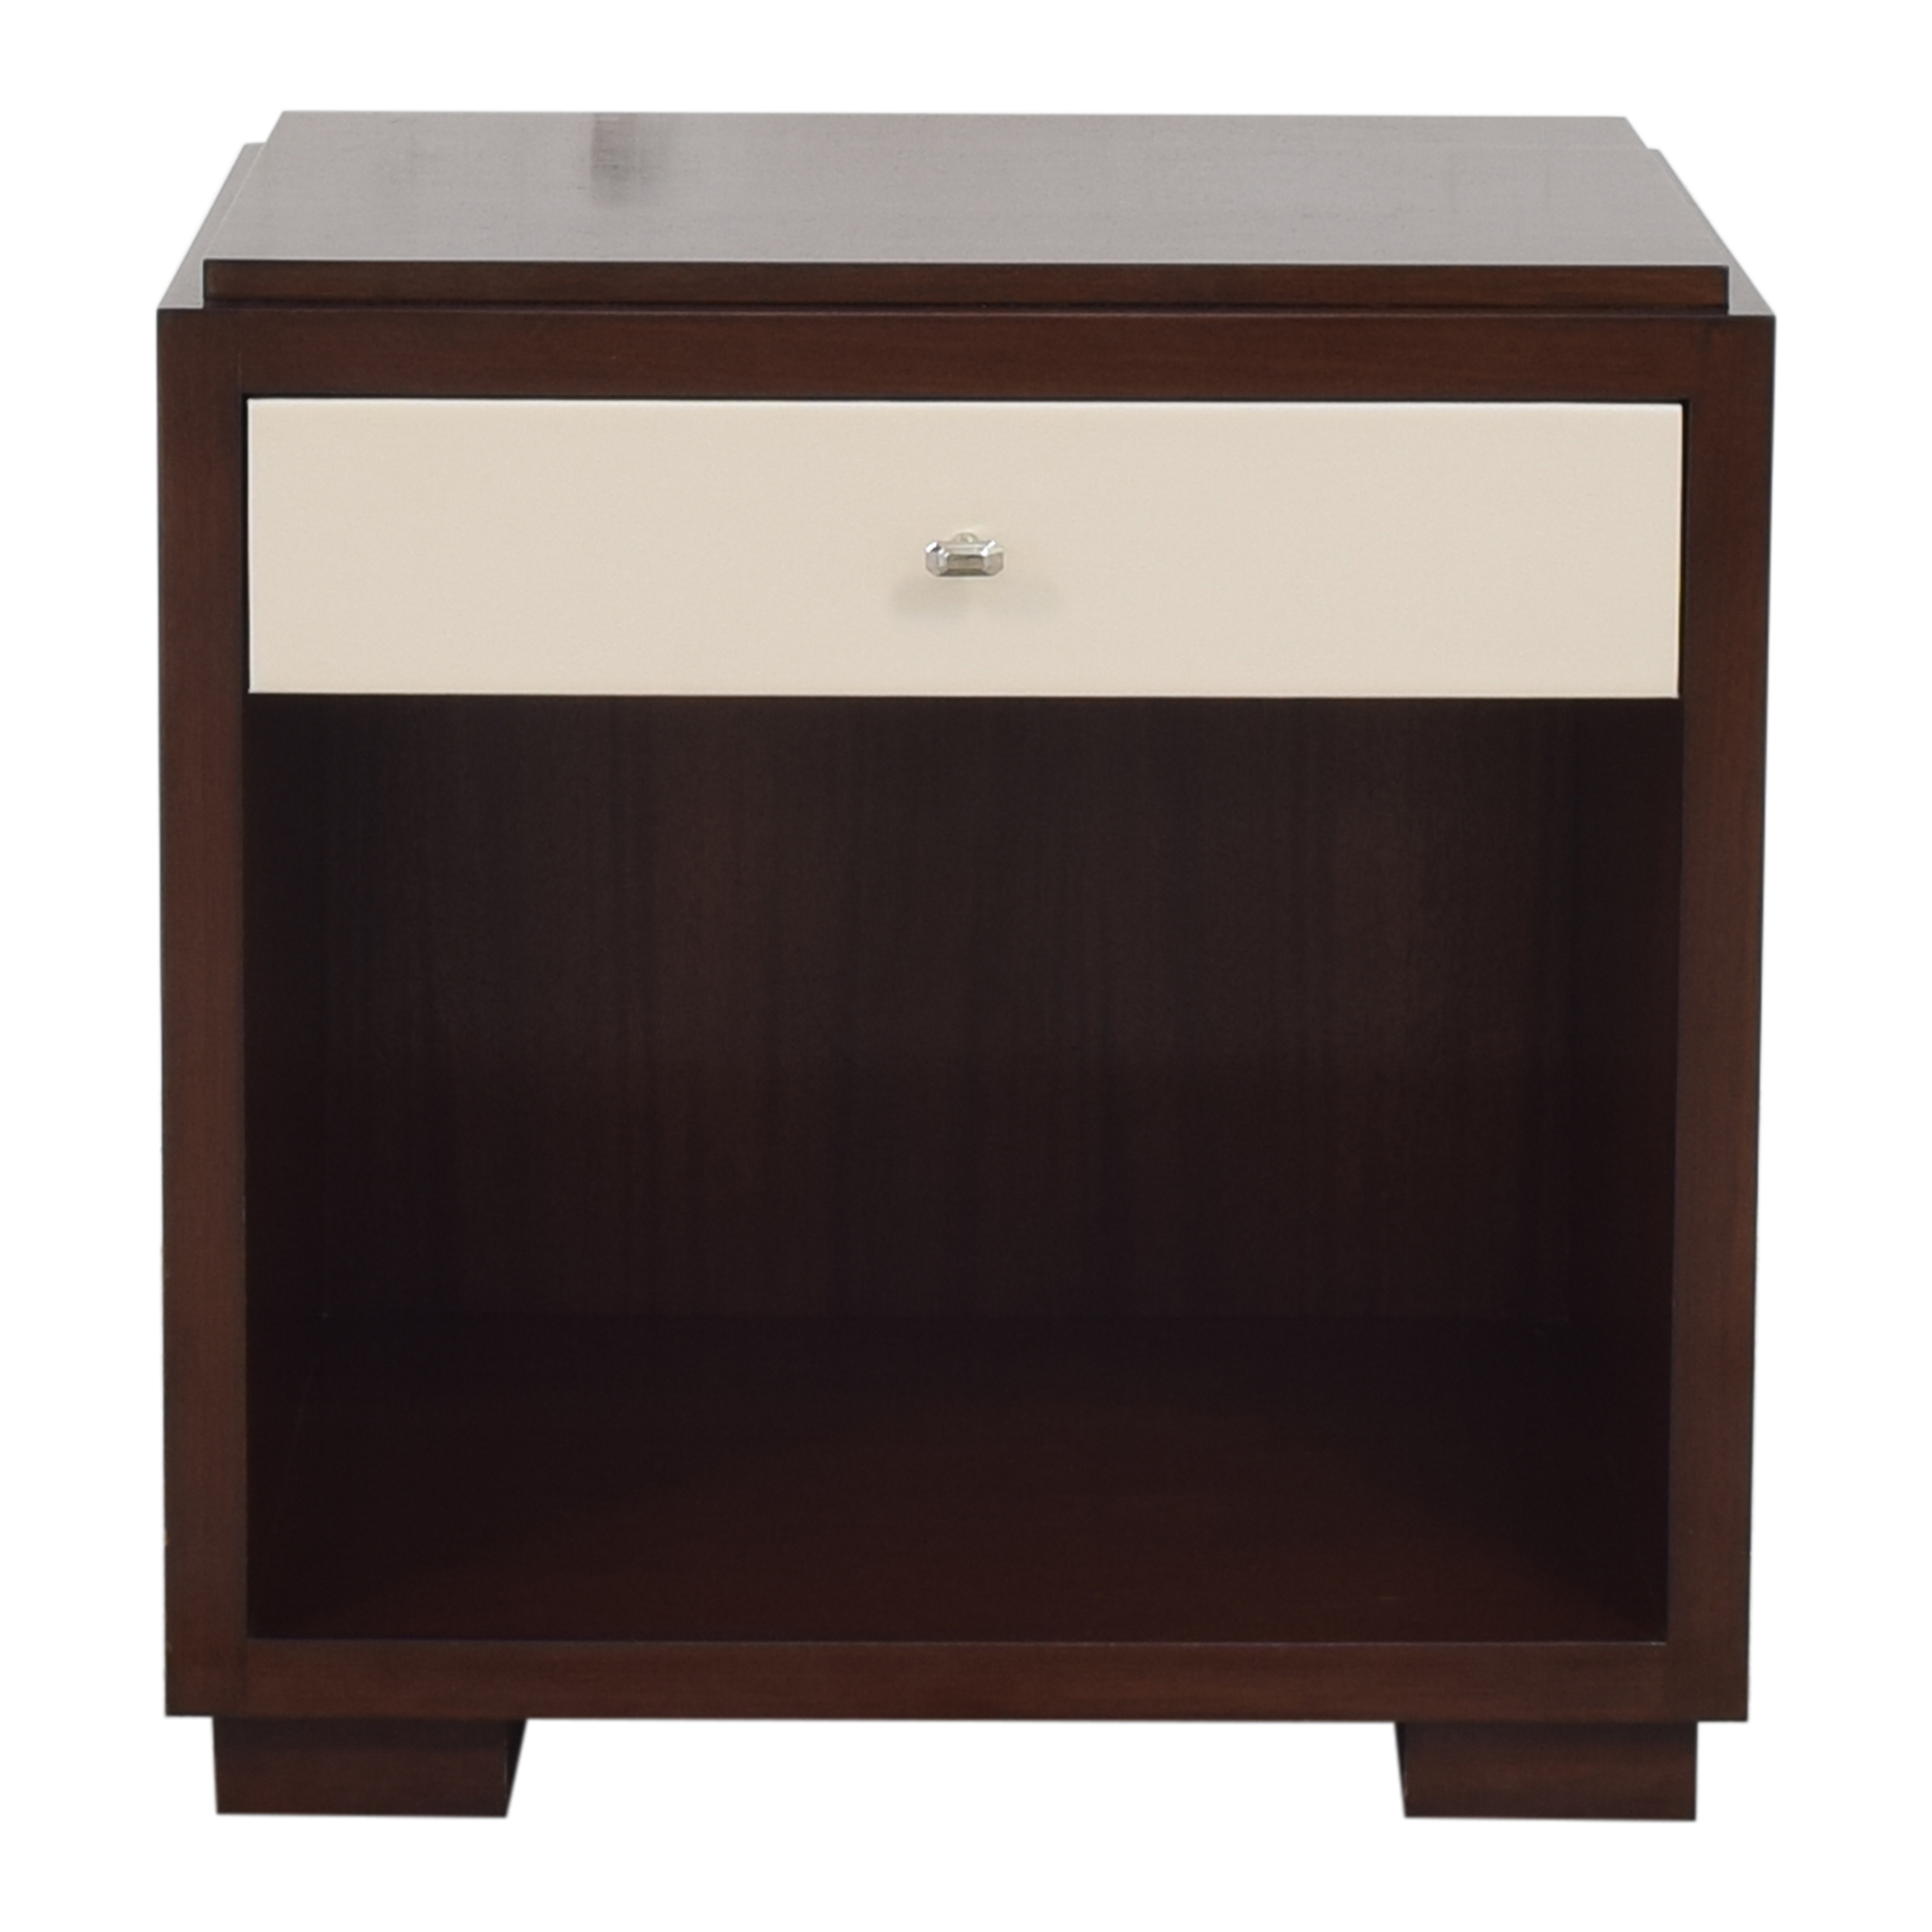 One Drawer Nightstand second hand